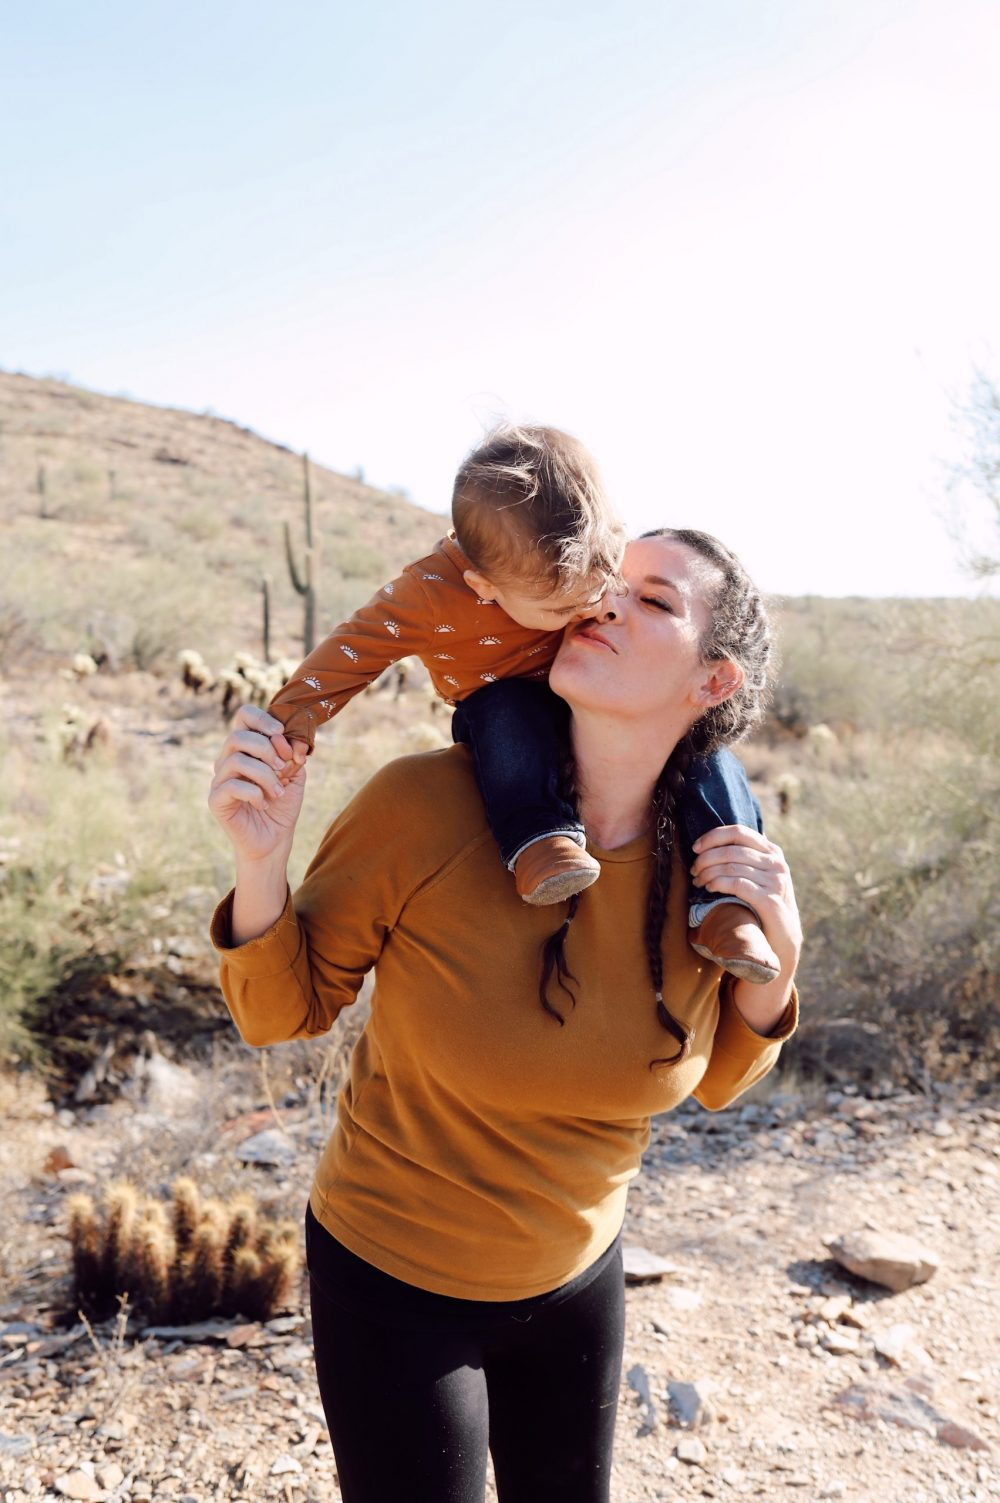 One of the Best Secret Winter Sun Destinations, Scottsdale Arizona. Hiking in the McDowell Sonoran Preserve |Guide by popular Florida travel blog, Fresh Mommy Blog: image of a family hiking in the McDowell Sonoran Preserve.